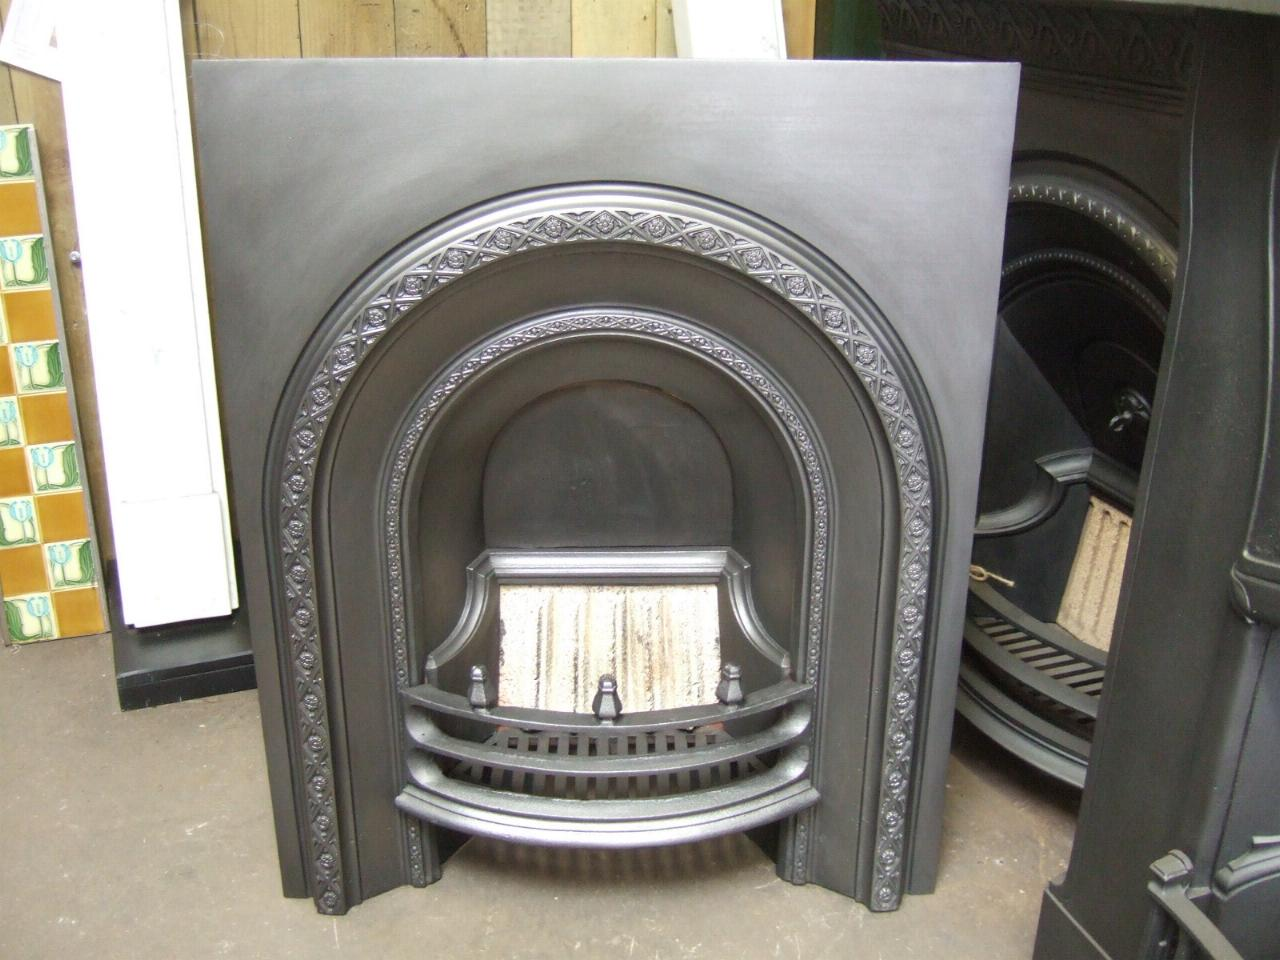 188AI - Victorian Arched Fireplace Insert - Anglesey - Old Fireplaces